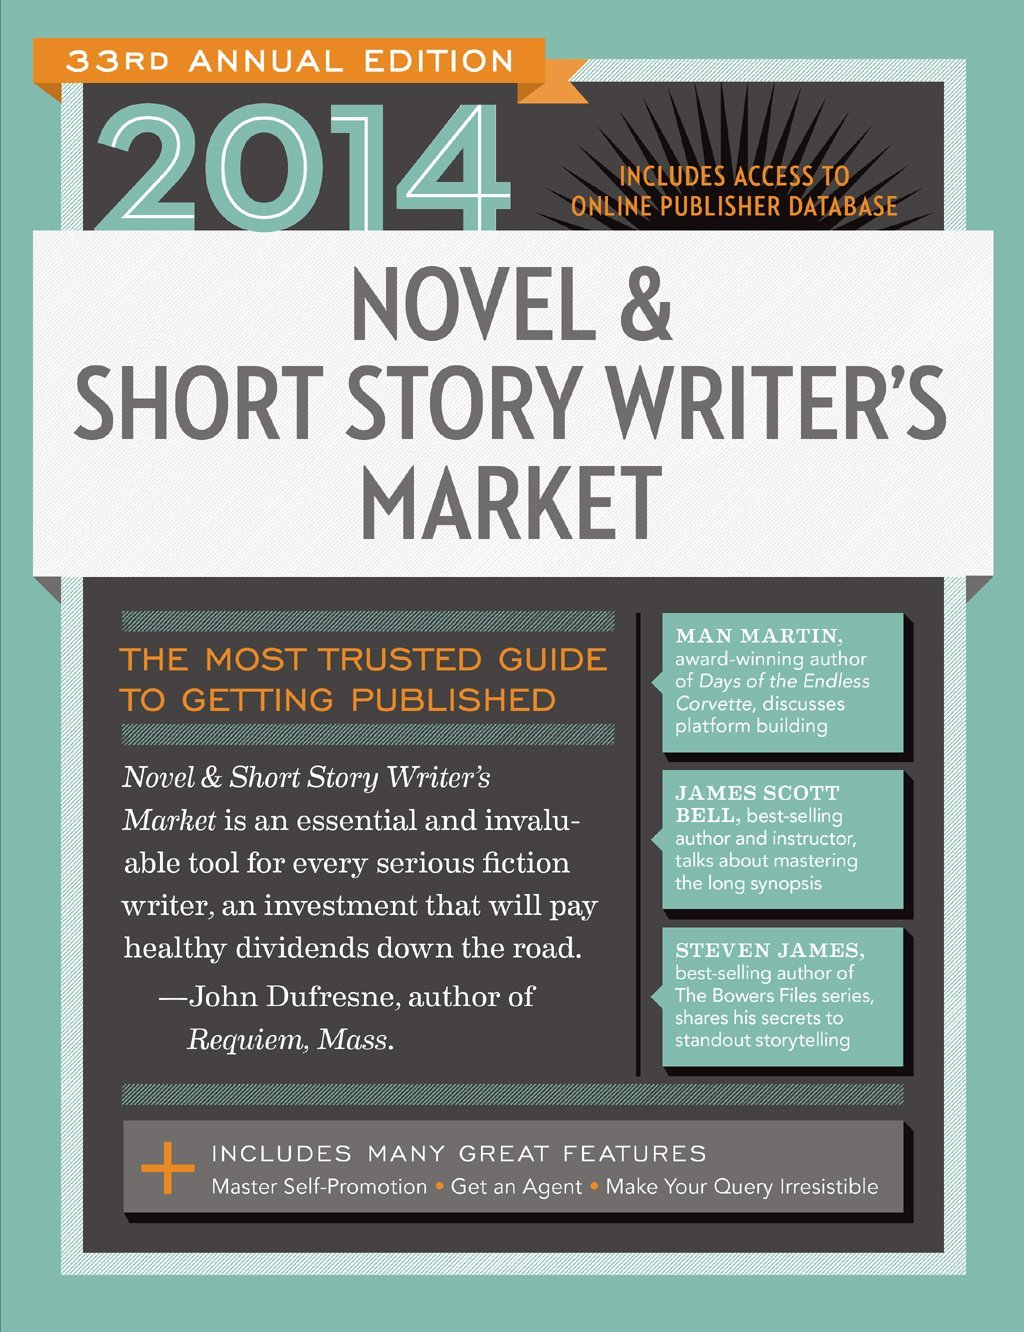 2014 Novel & Short Story Writer